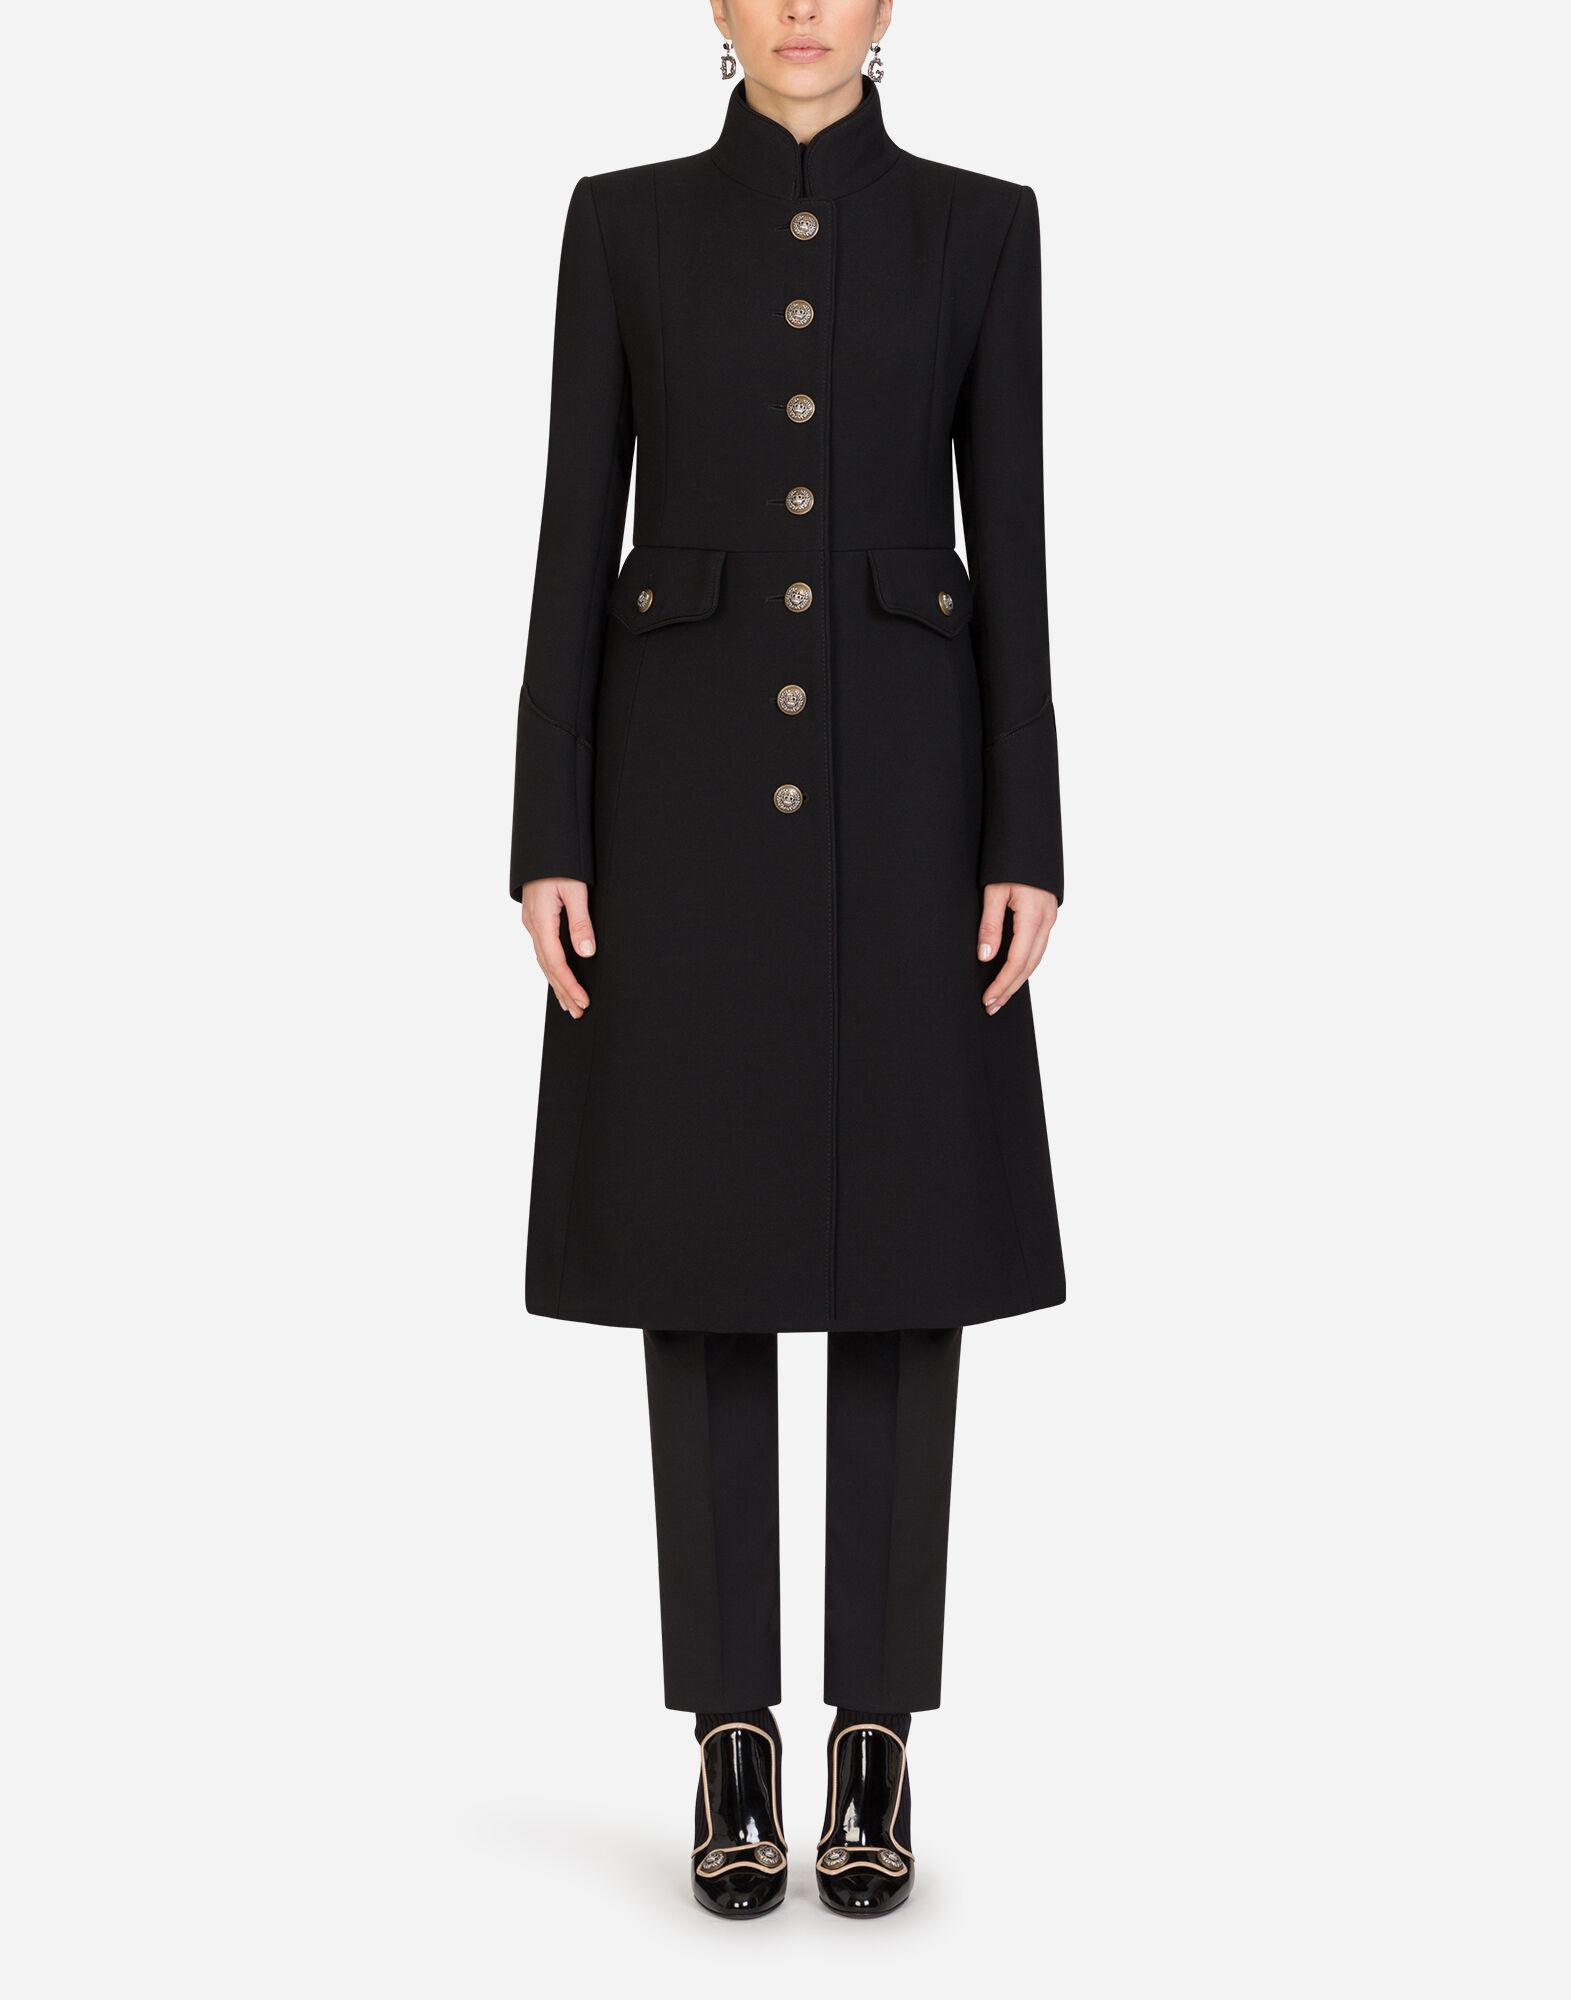 Woolen jacket with decorative buttons